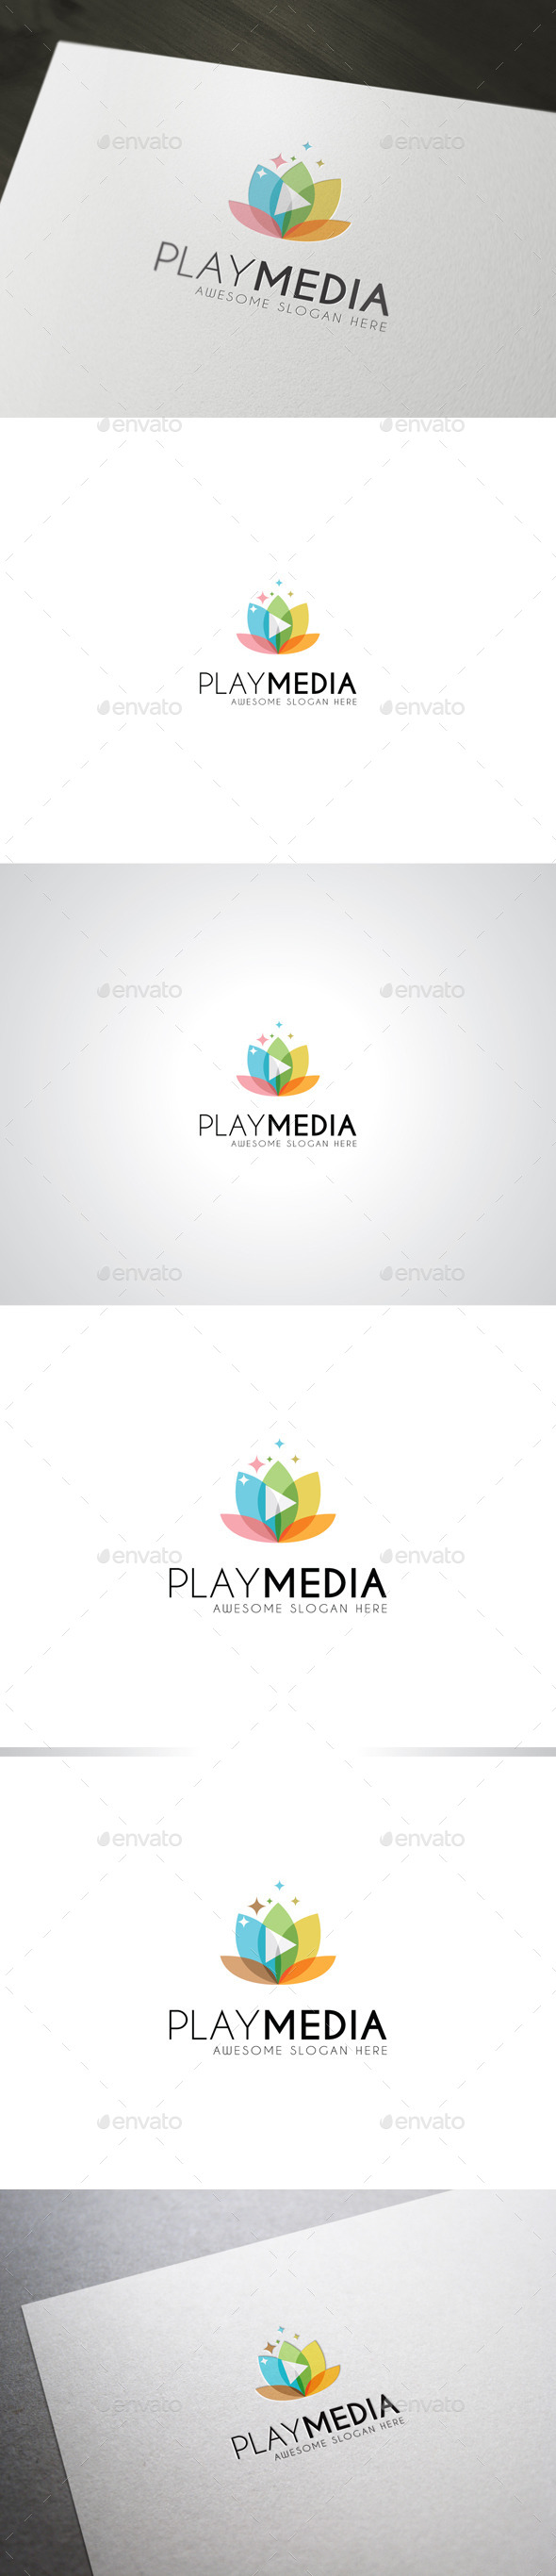 GraphicRiver PlayMedia Logo Template 8805061